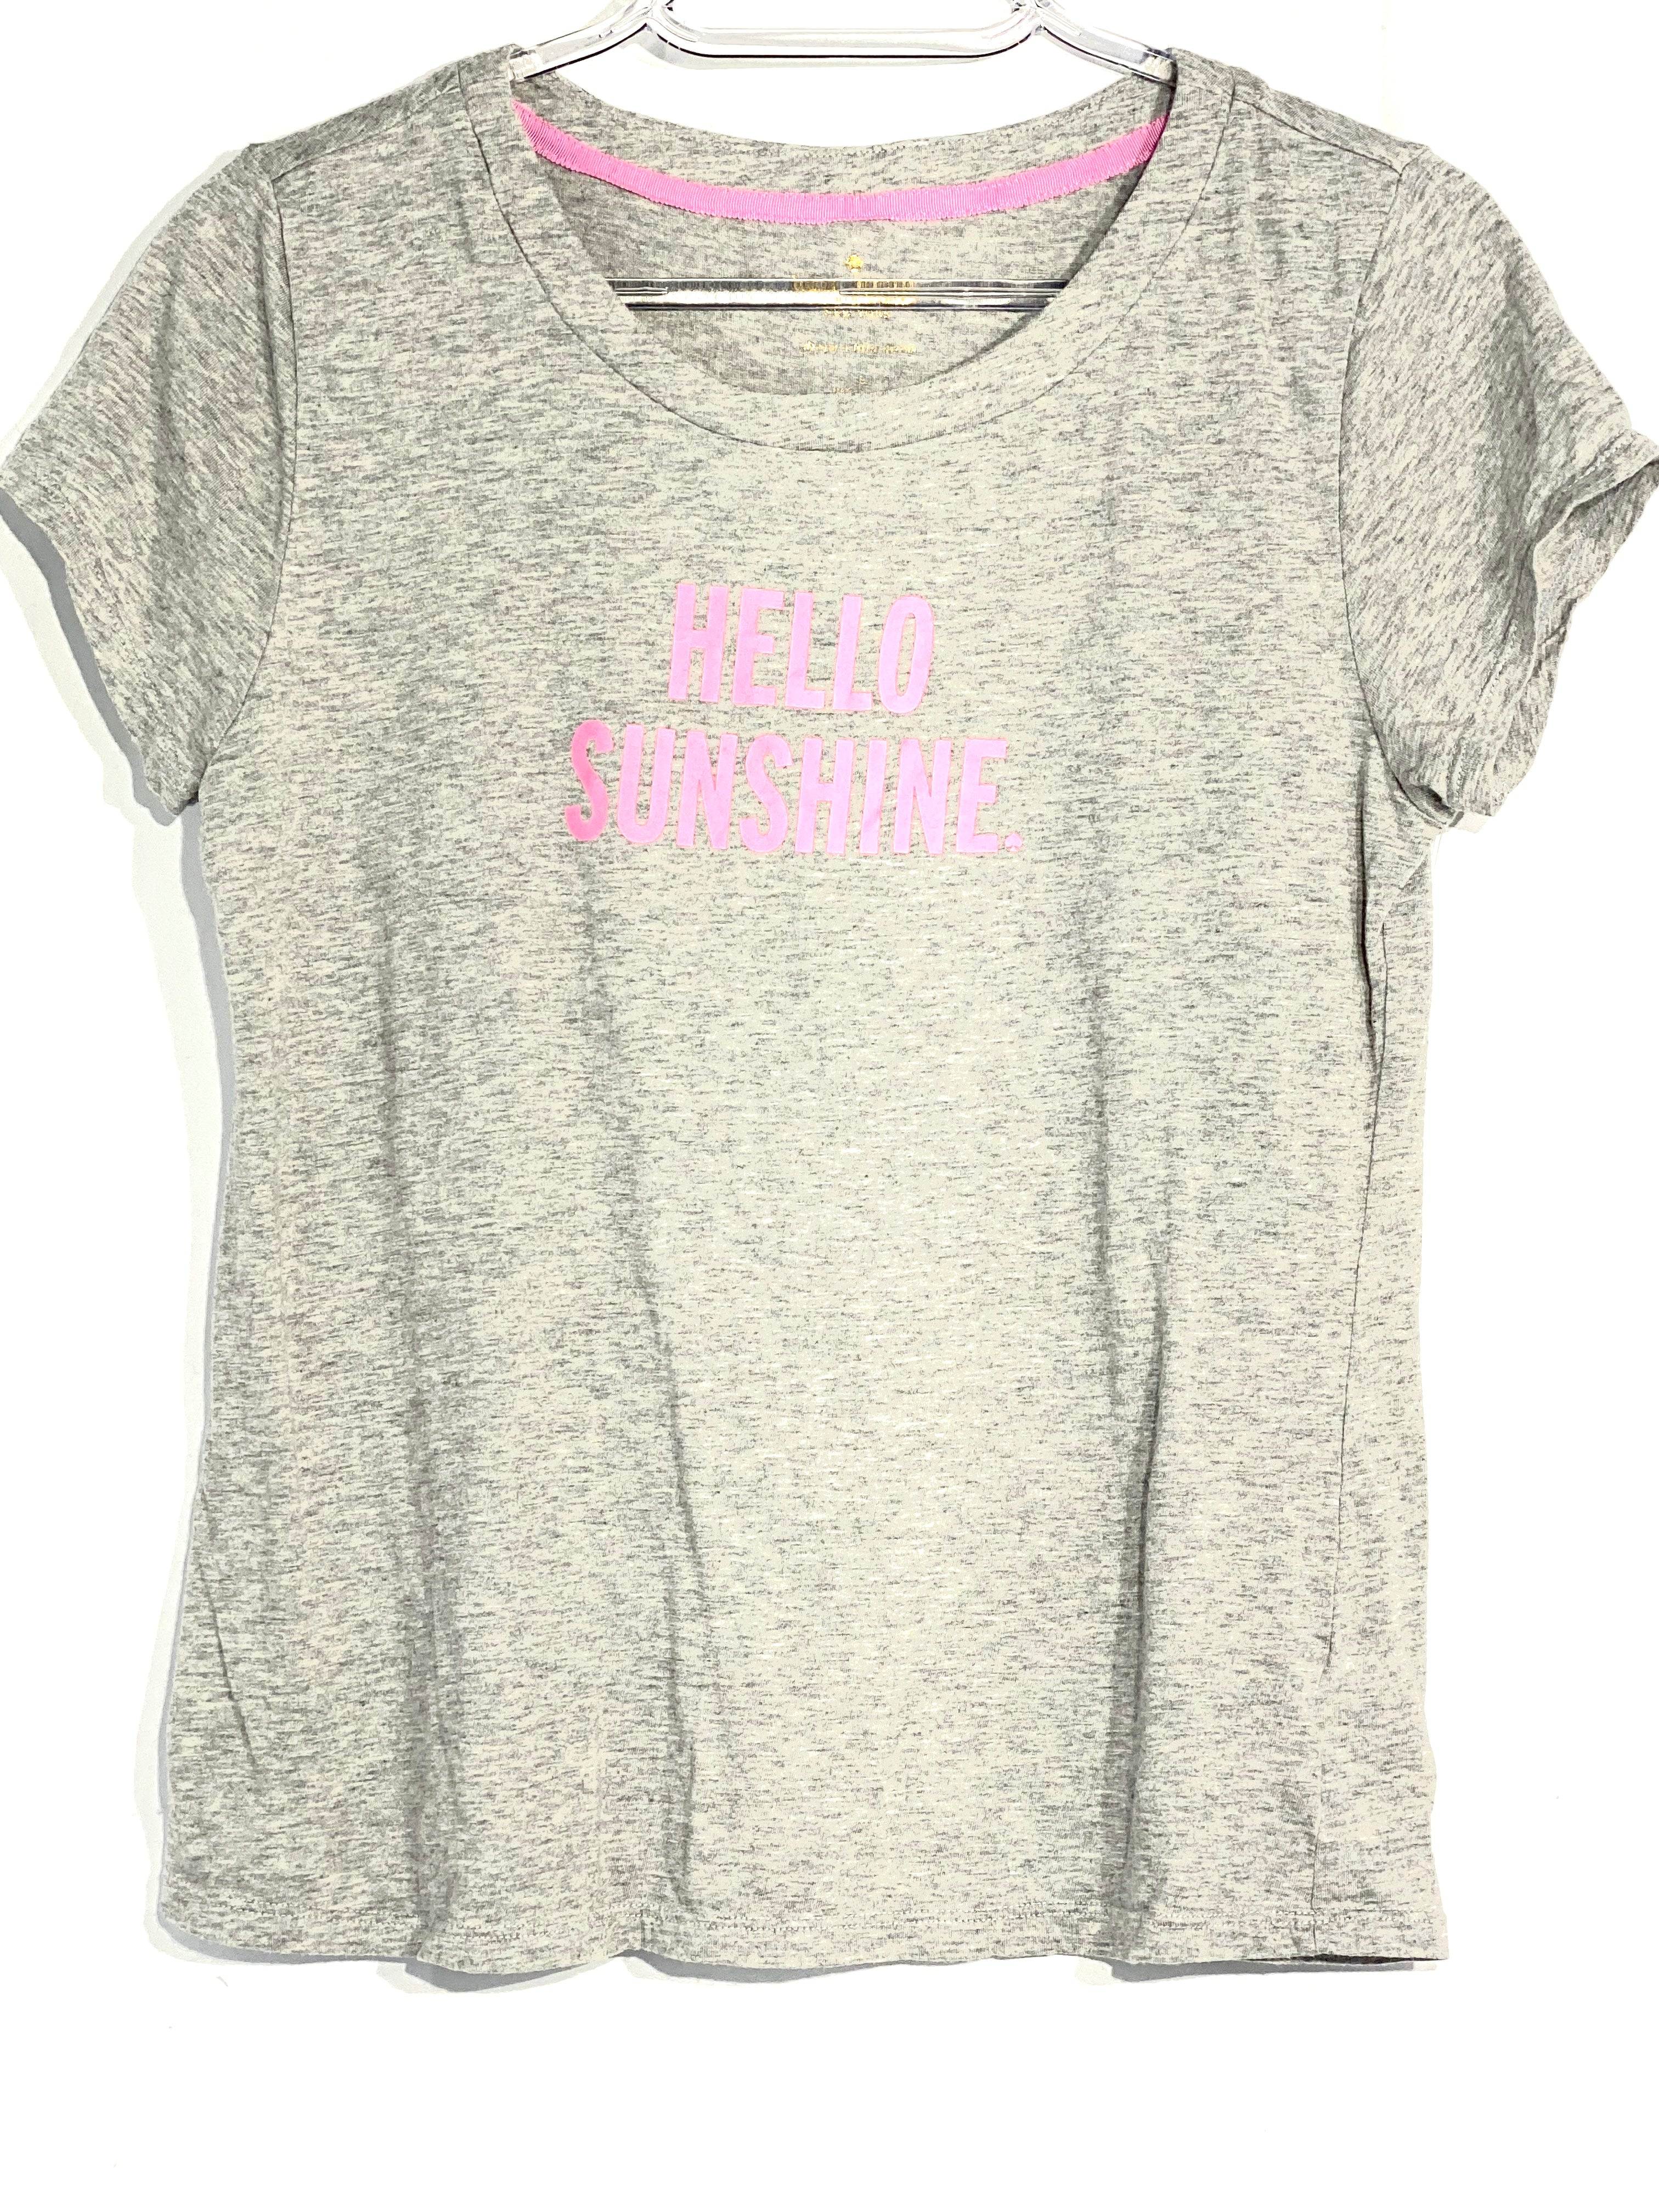 Primary Photo - BRAND: KATE SPADE <BR>STYLE: TOP SHORT SLEEVE <BR>COLOR: GREY <BR>SIZE: S <BR>SKU: 262-26275-65944<BR><BR>DESIGNER FINAL <BR>PINK LETTERS MUCH BRIGHTER THAN PIC SHOWS